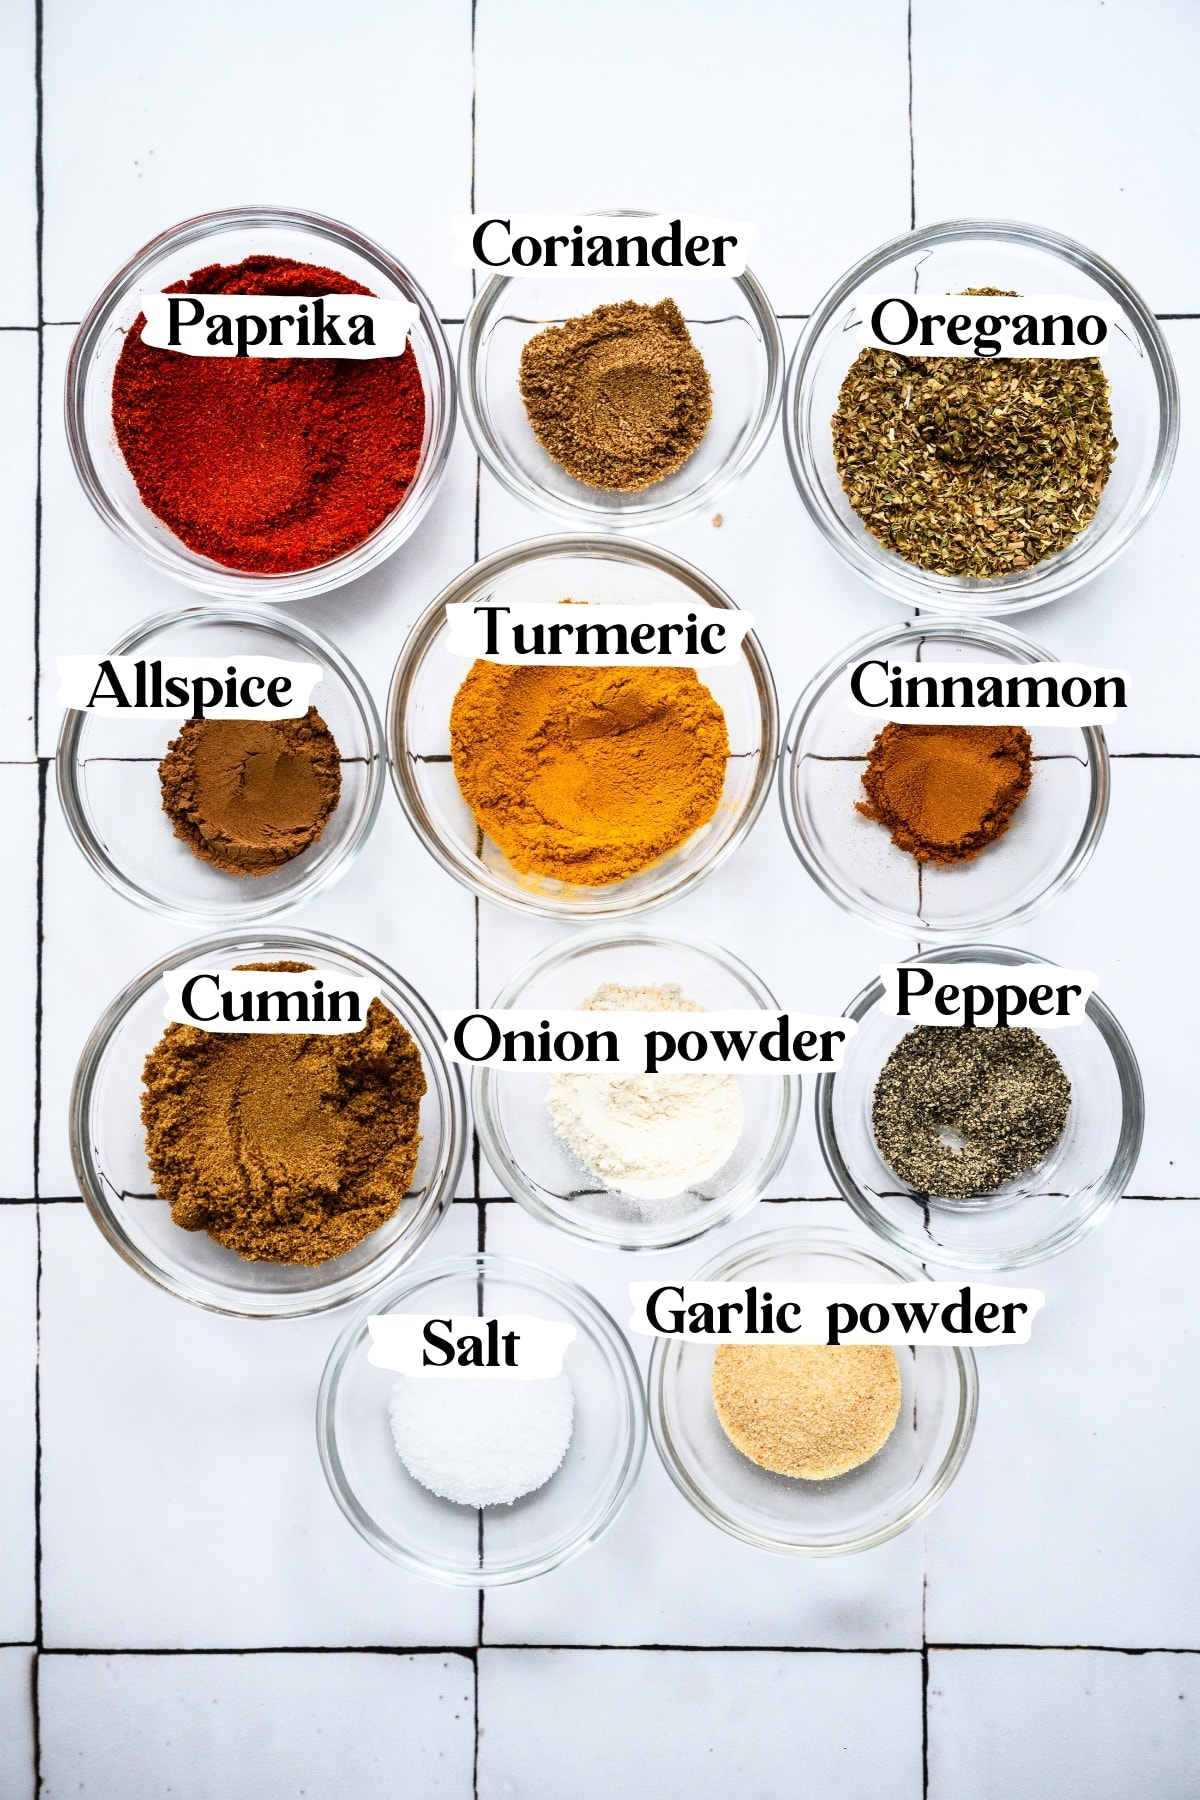 overhead view of spices in small bowls for shawarma spice blend.